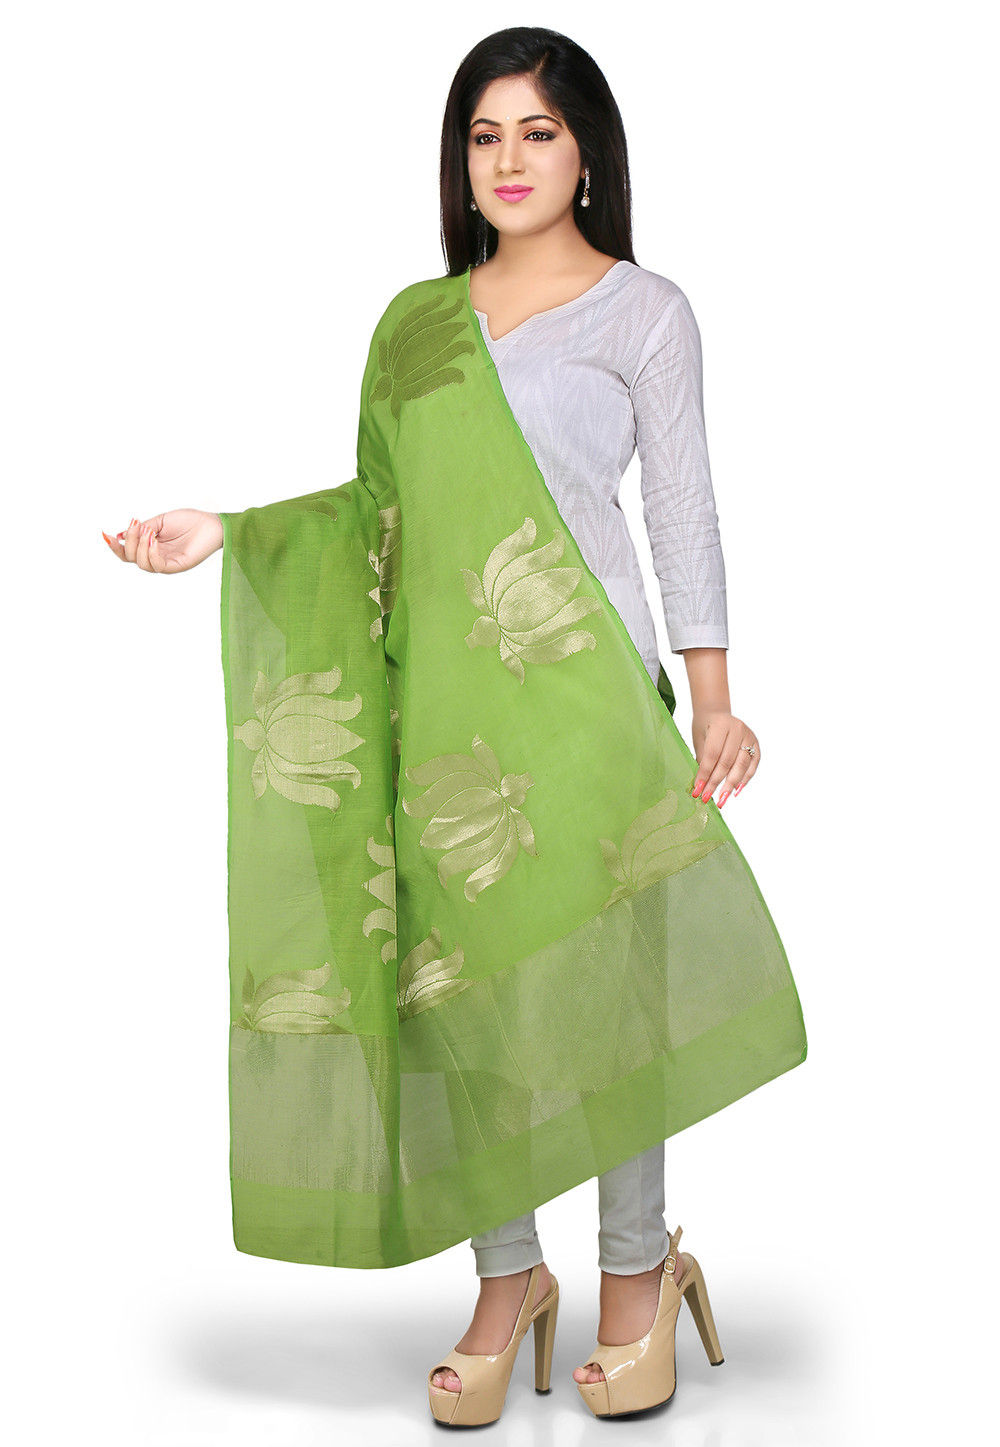 Handloom Cotton Silk Dupatta in Green